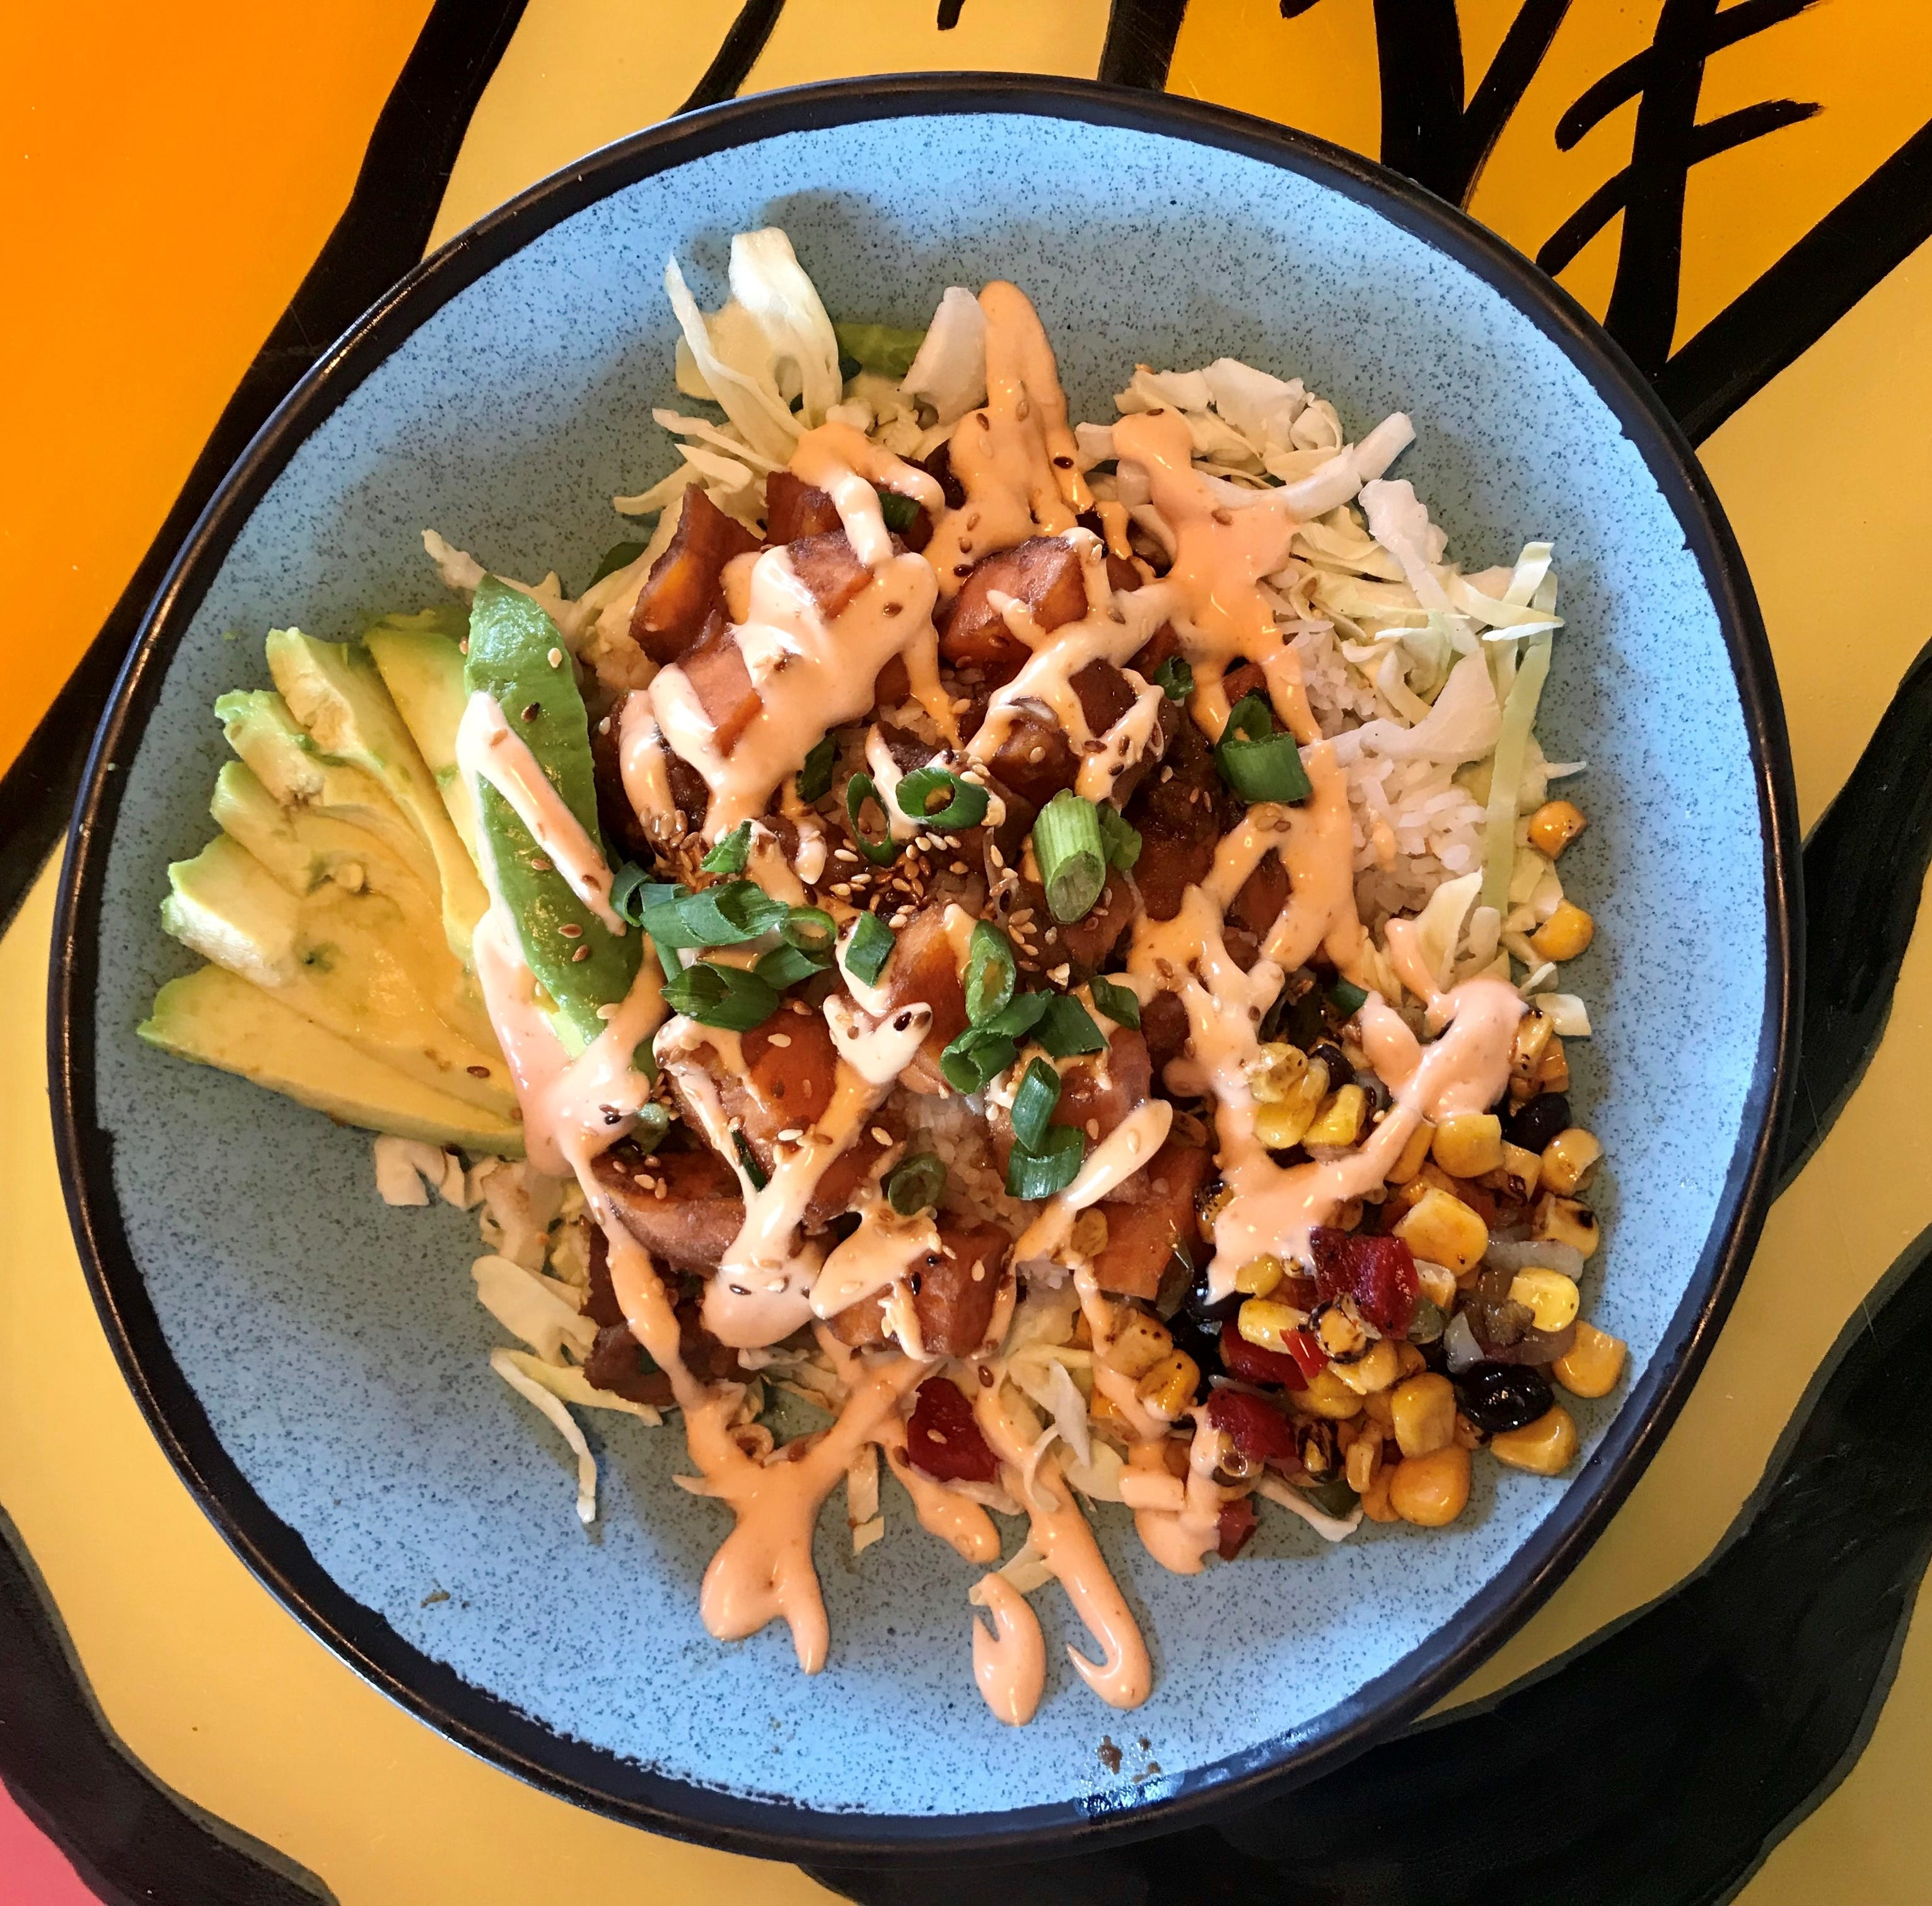 The sweet potato poke bowl is one of the meat-free options at the new 4th Street Fillin' Station in Cocoa Beach.